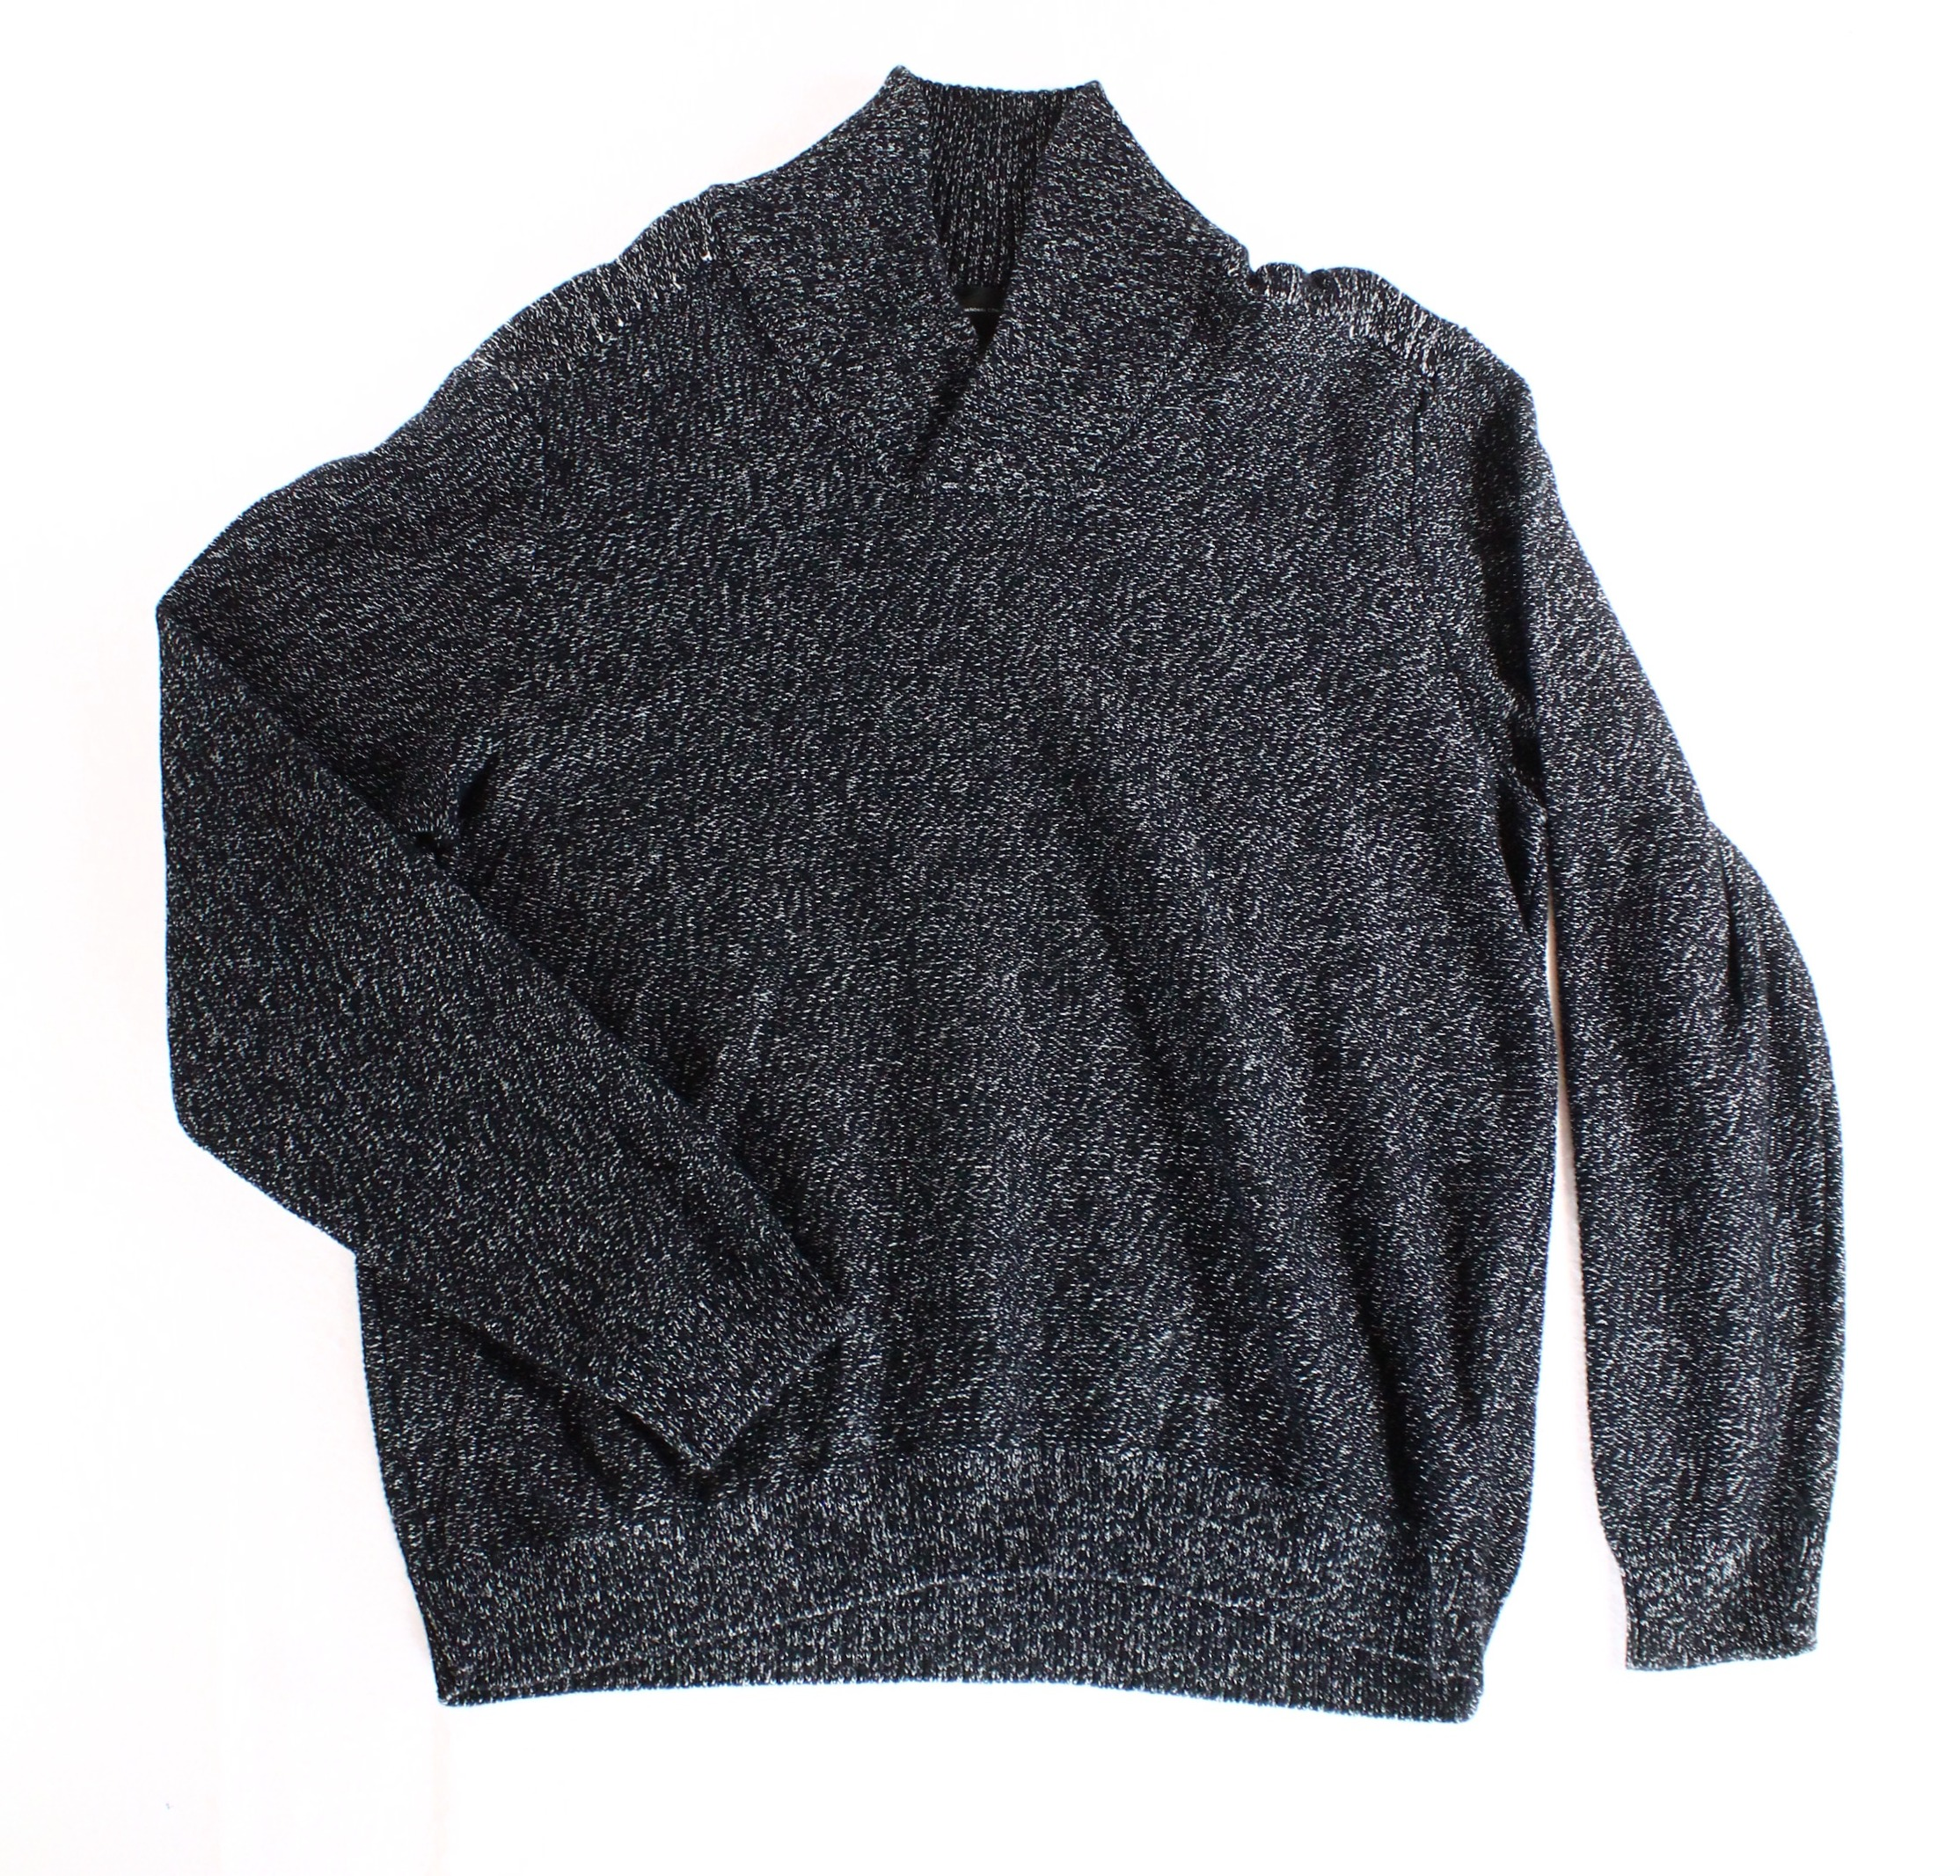 INC NEW Black Gray Marled Ribbed Shawl Collar Mens Size 2XL Pullover Sweater